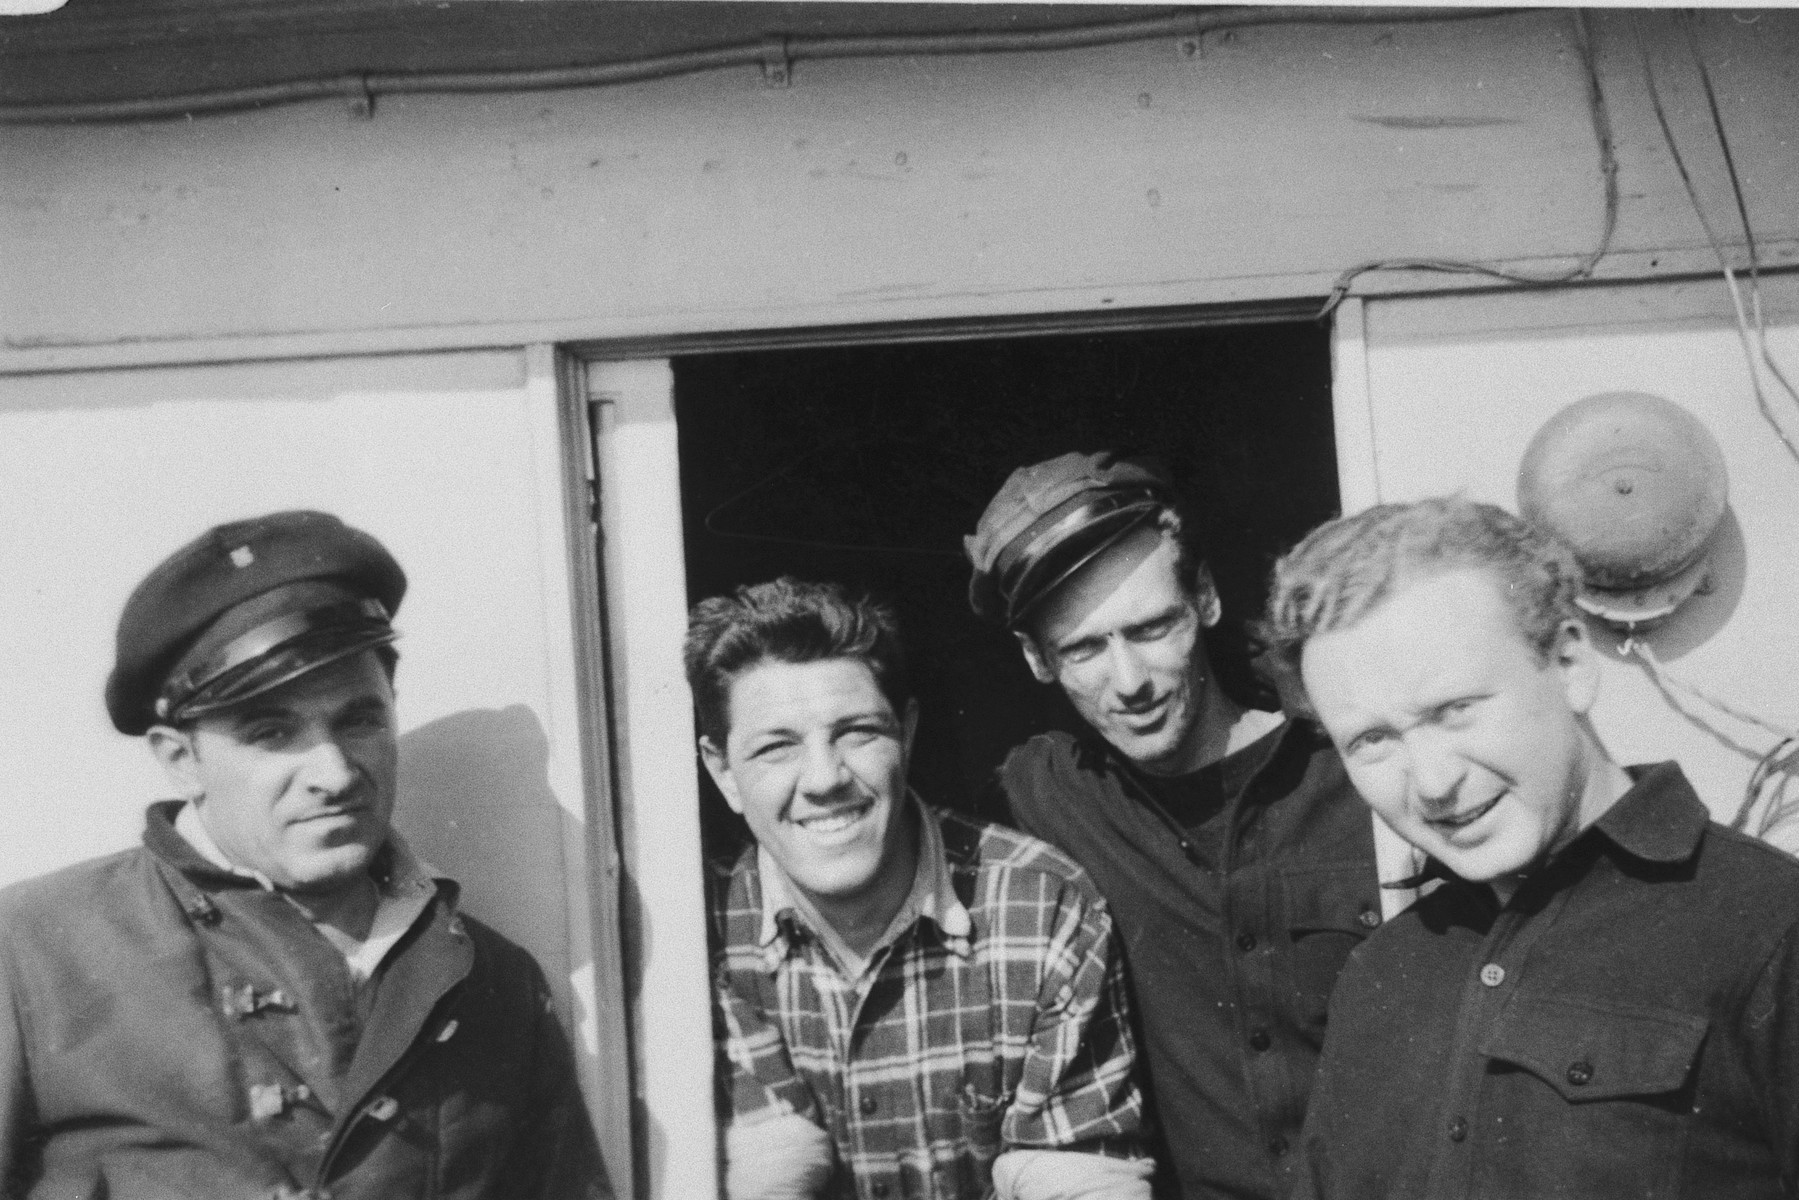 Four crew members of the President Warfield (later the Exodus 1947) pose on the deck of the ship in Baltimore harbor.  Pictured from left to right are: Mike Weiss, William Millman, Paul Yarin and William Bernstein.